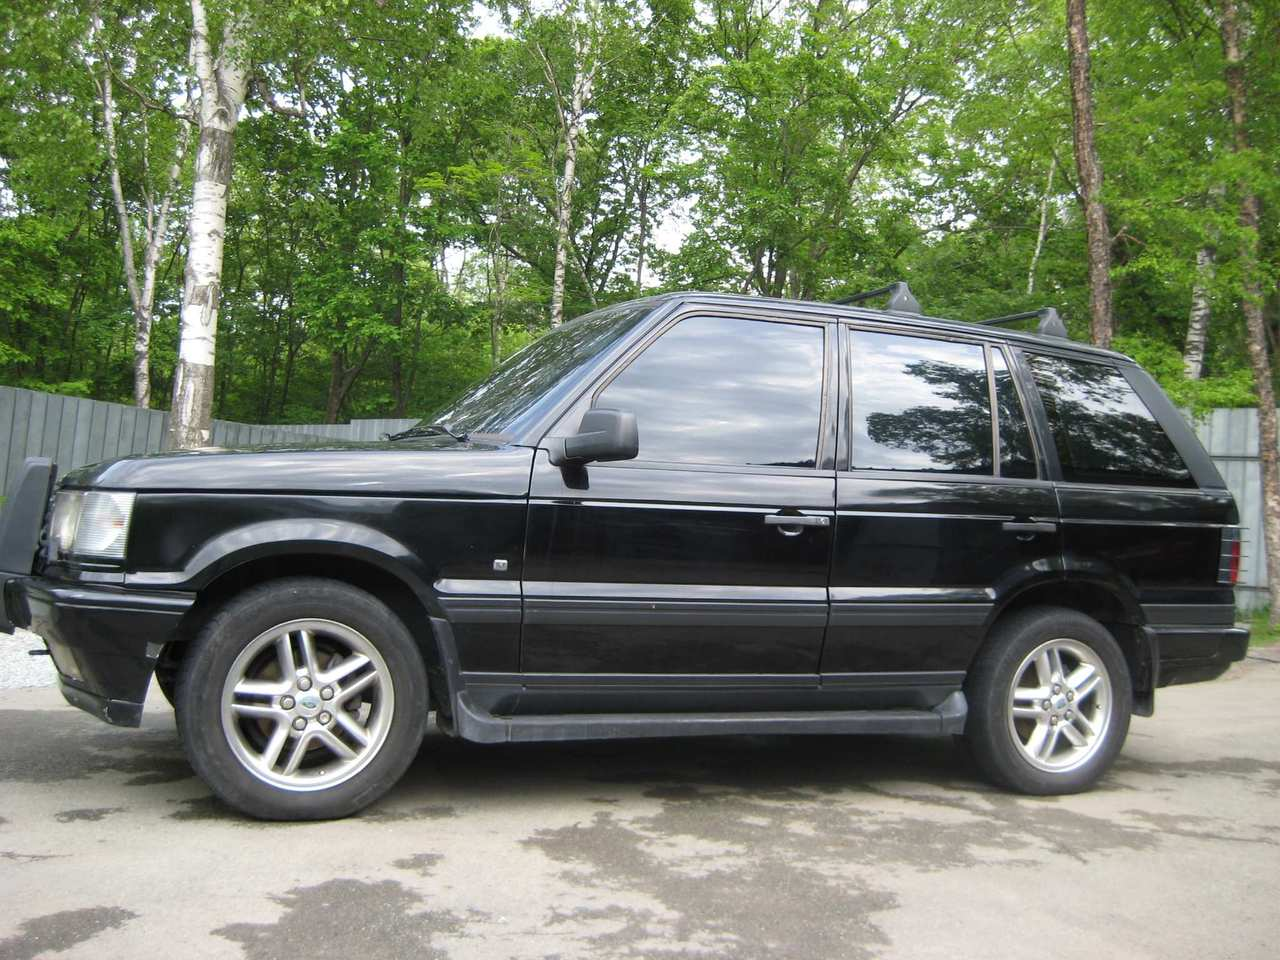 1998 LAND Rover Range Rover For Sale, 4.6, Gasoline, Automatic For